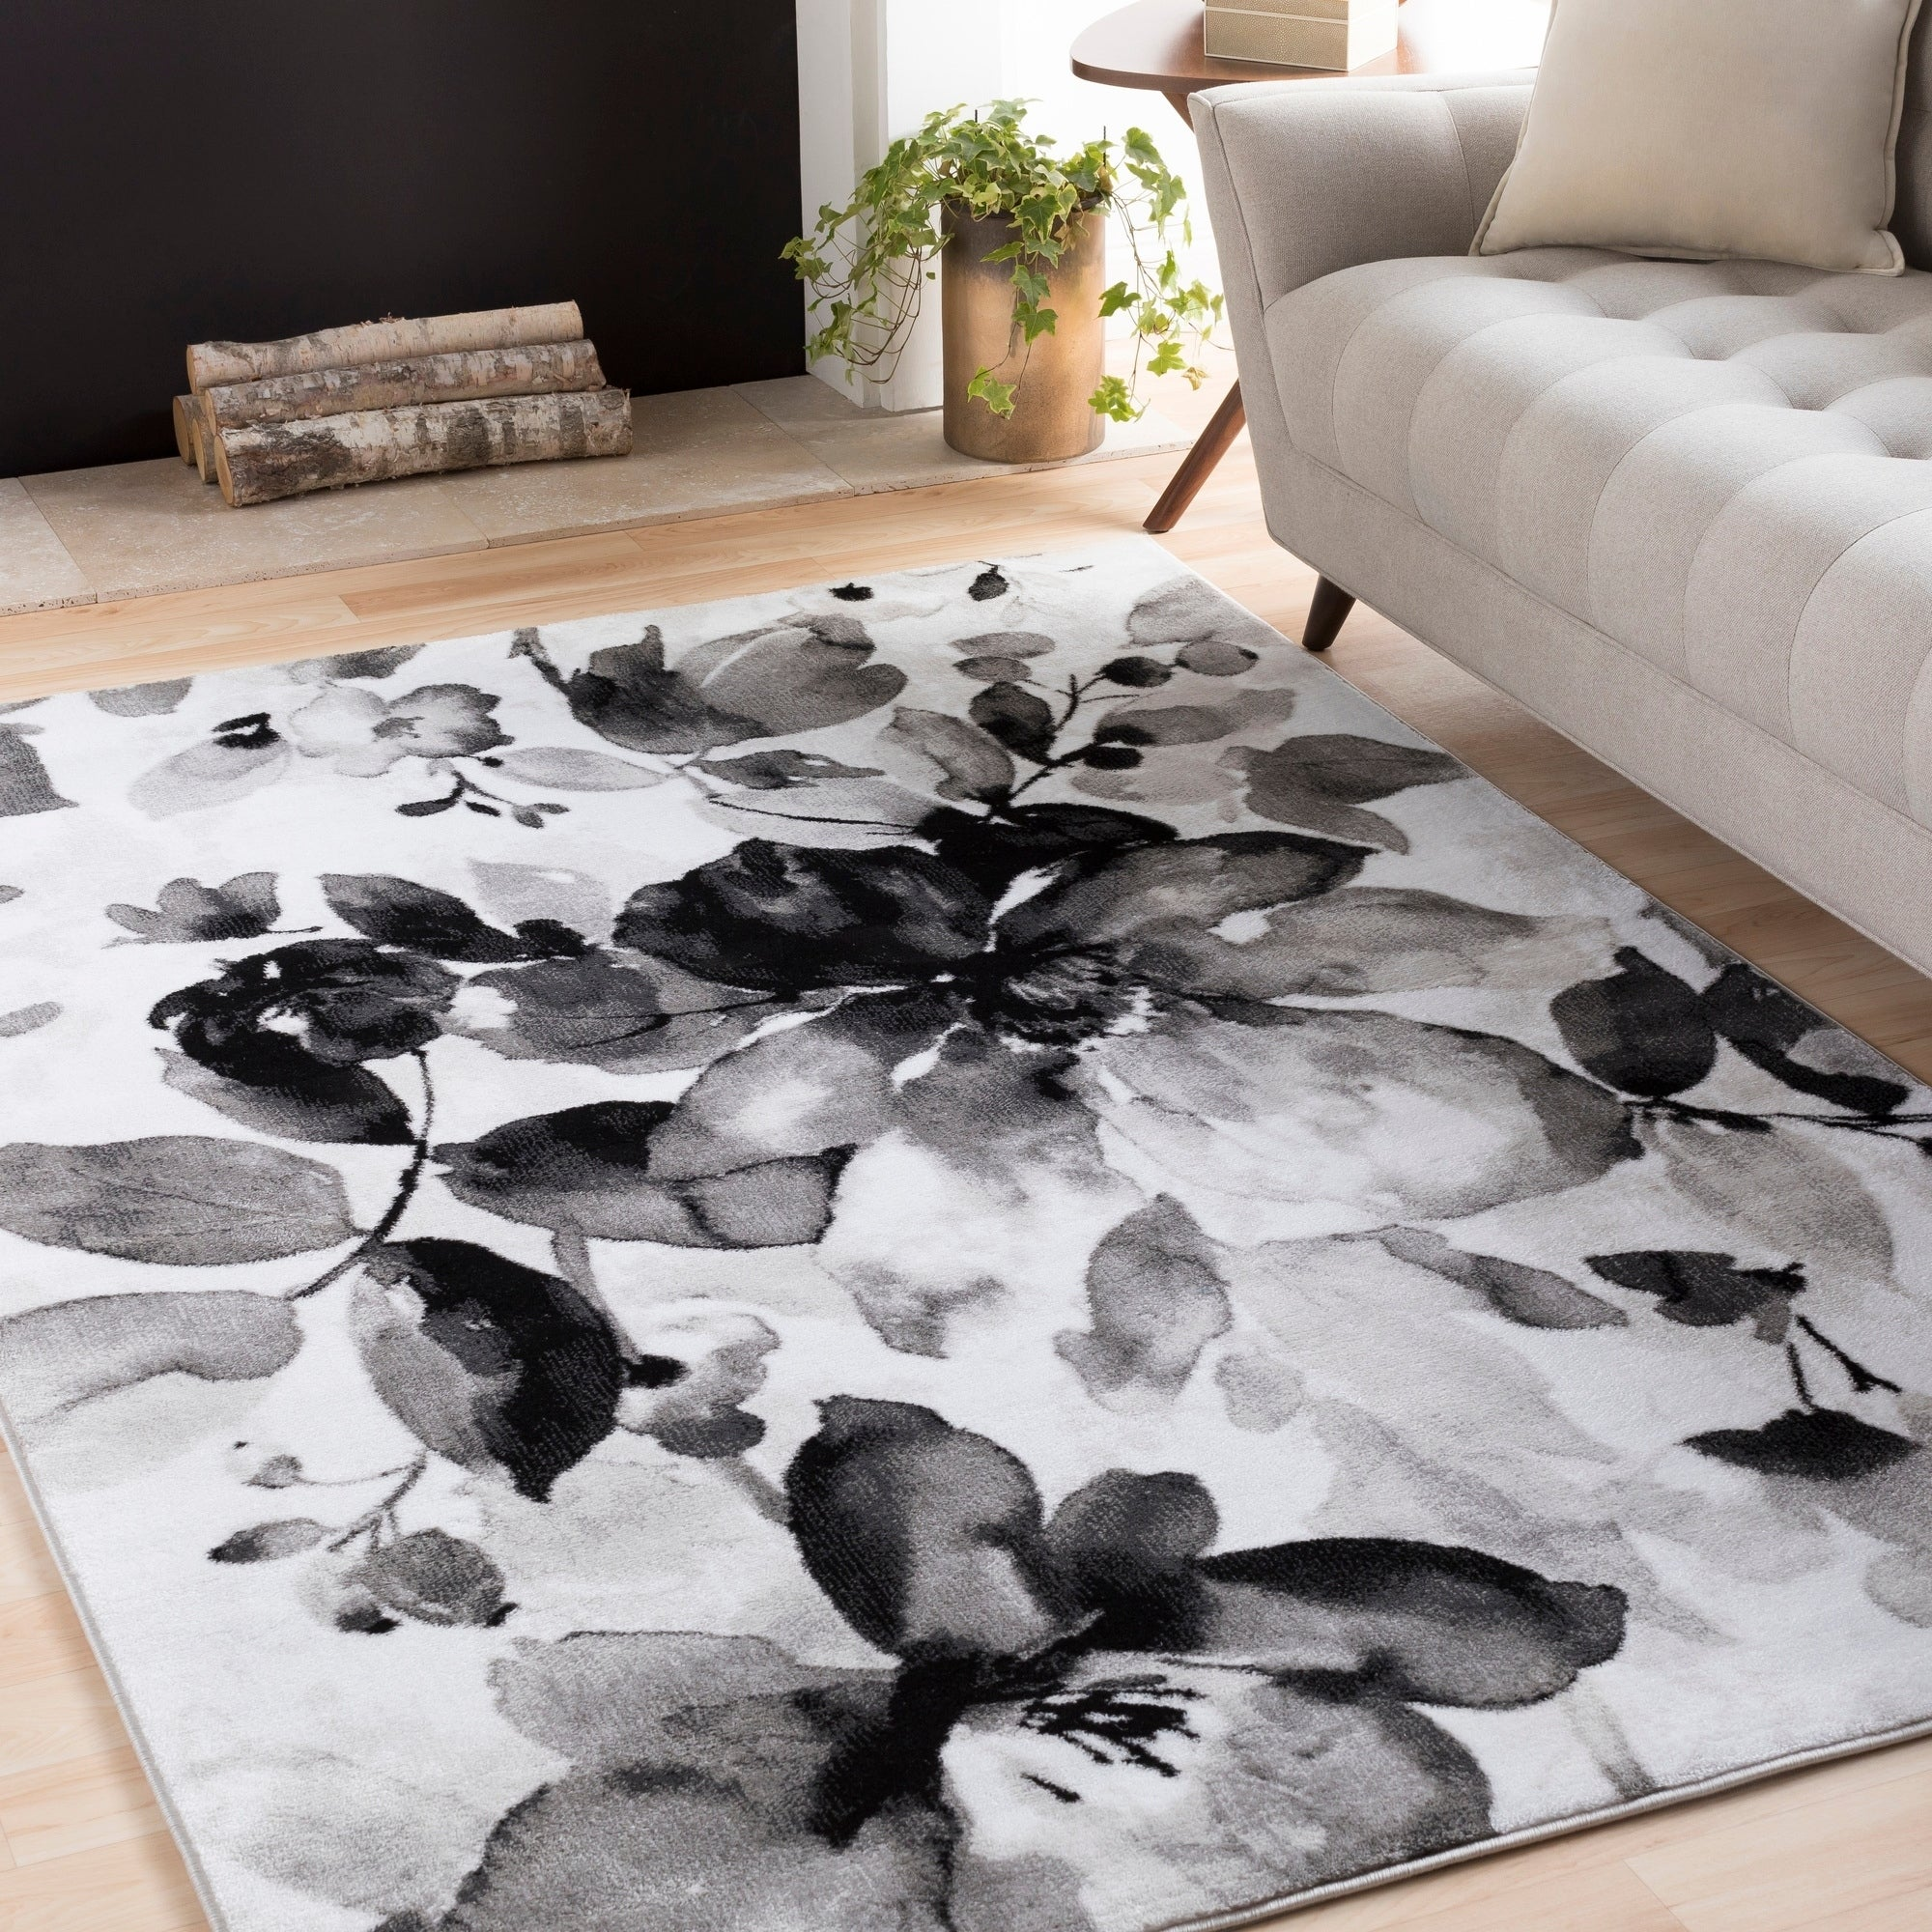 Shop Kemi Area Rug - 3'9 x 5'2 - On Sale - Free Shipping Today ... Ideas For Kitchen Cabinets Cream E A Html on